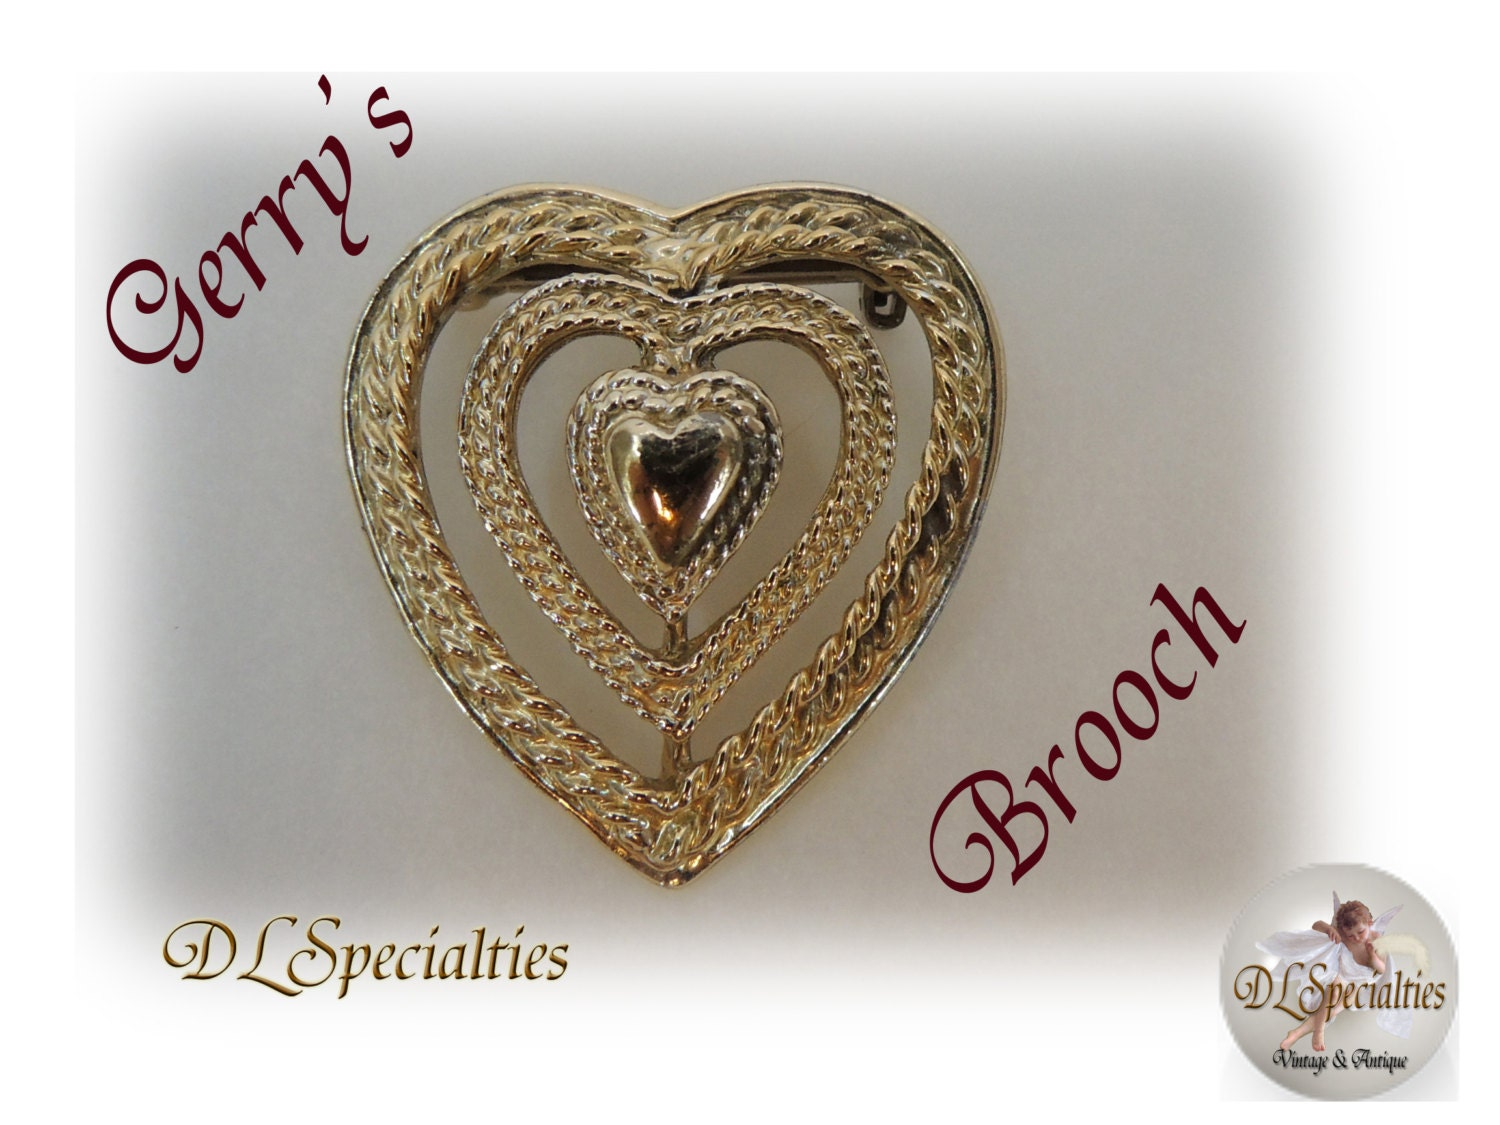 gerry s vintage jewelry brooch by dlspecialties on etsy